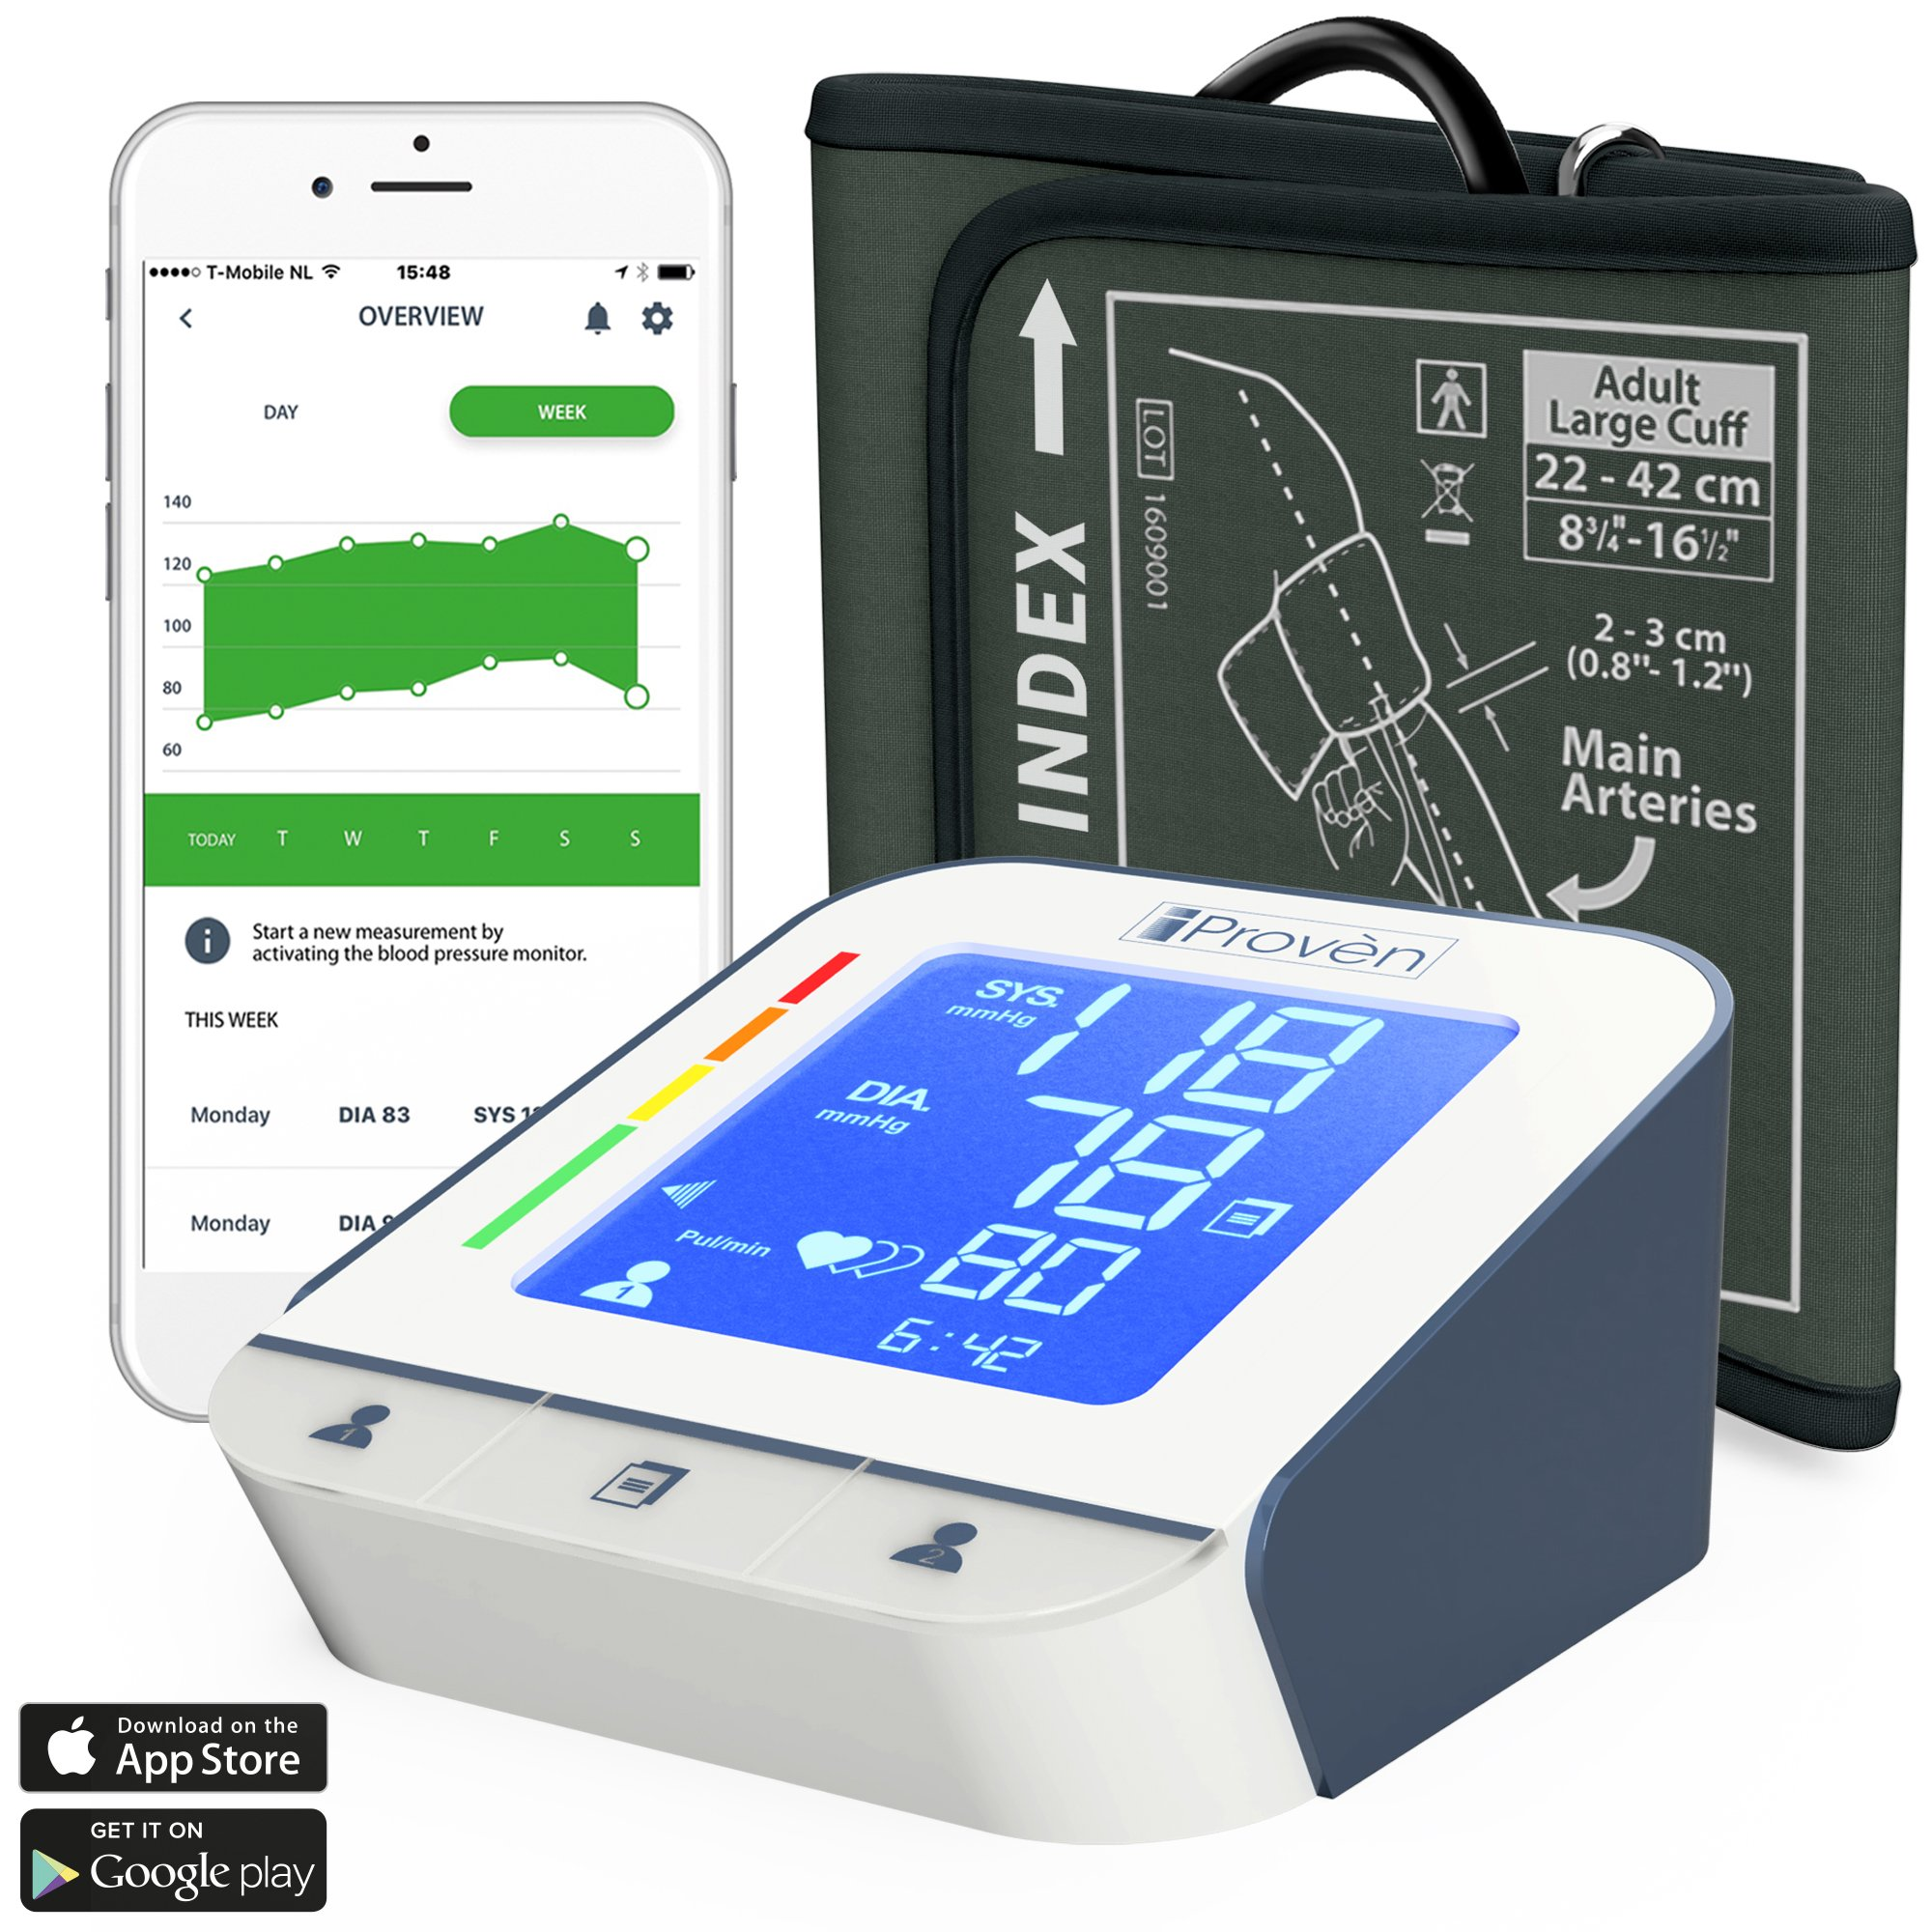 Blood Pressure Monitor - High Accuracy Automatic Upper Arm Premium Machine - iProvèn BPM-2244BT with App for iPhone and Android - Large BP Cuff - Best Among Top Rated Electronic Monitors and Cuffs